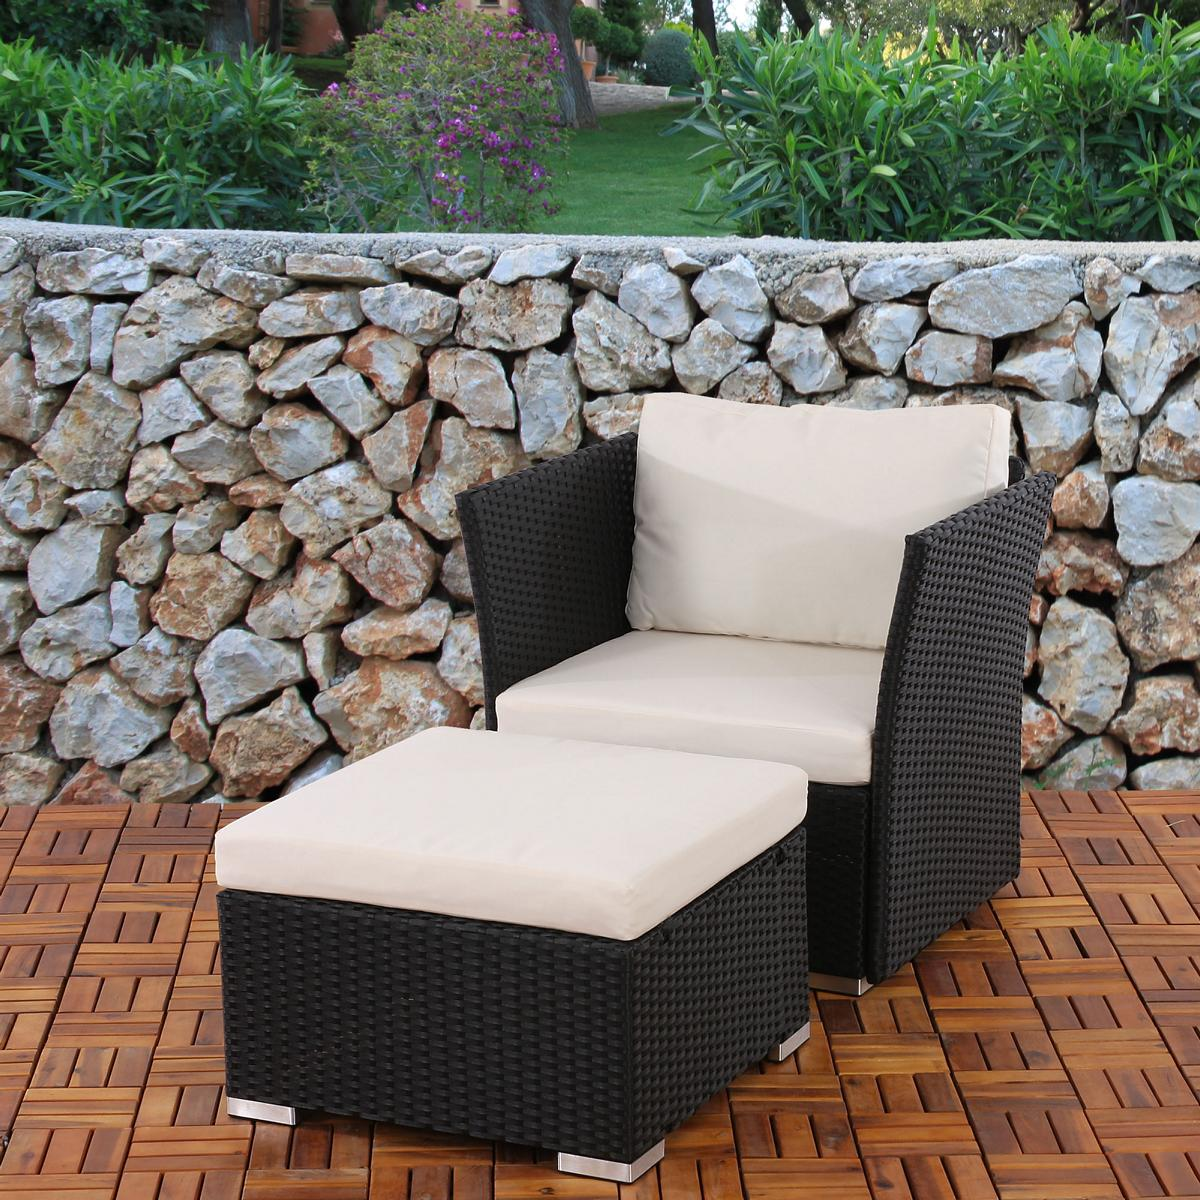 sessel mit ottomane sevilla poly rattan anthrazit mit kissen in creme ebay. Black Bedroom Furniture Sets. Home Design Ideas